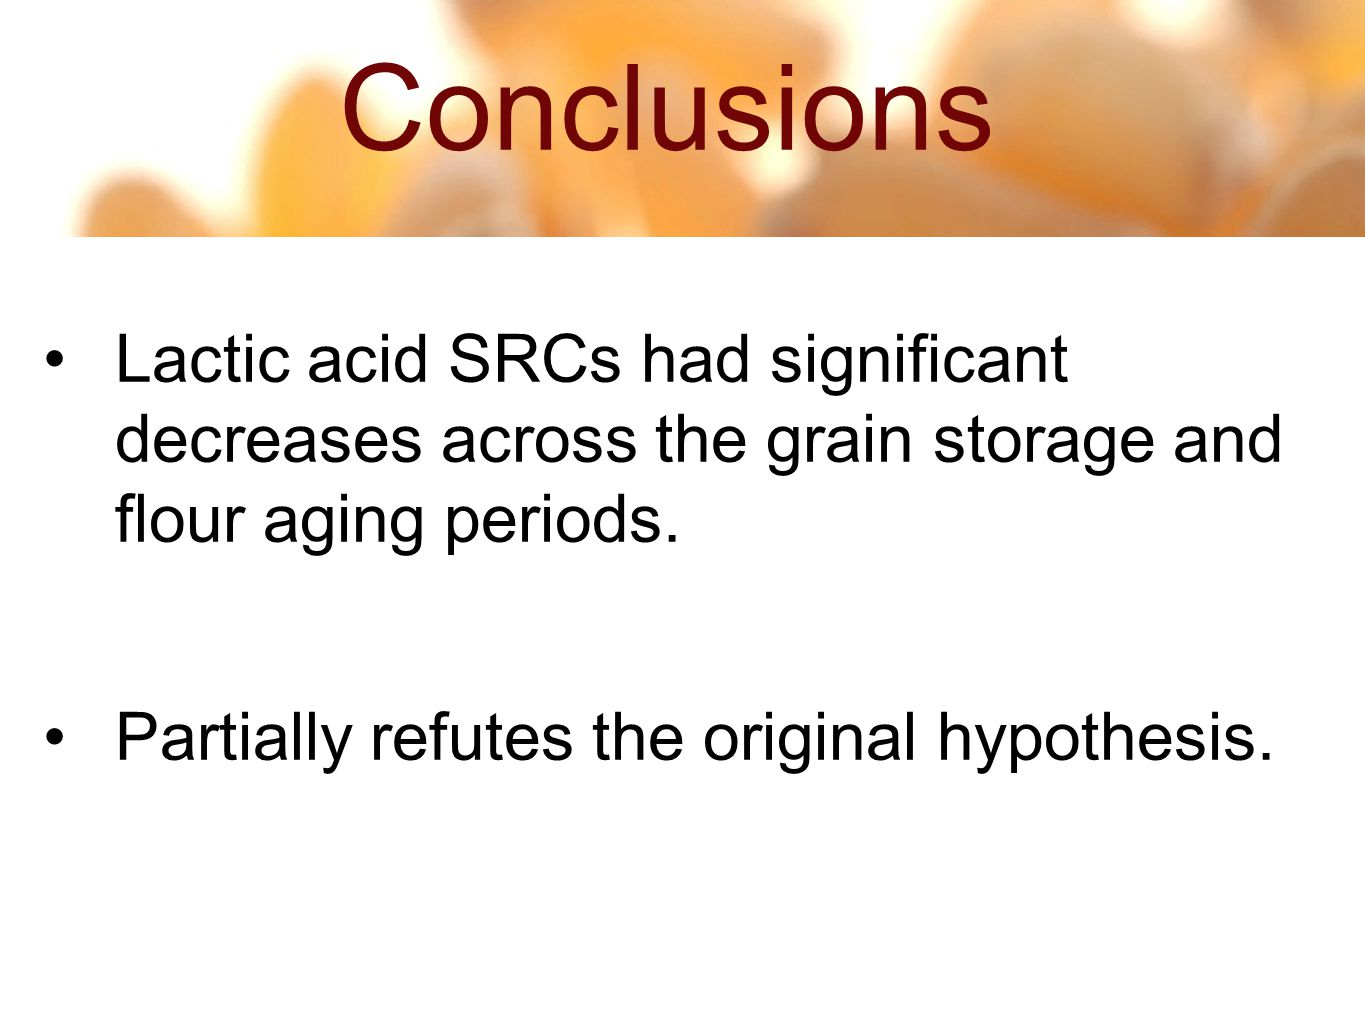 14 53 Lactic acid SRCs had significant decreases across the grain storage and flour aging periods.